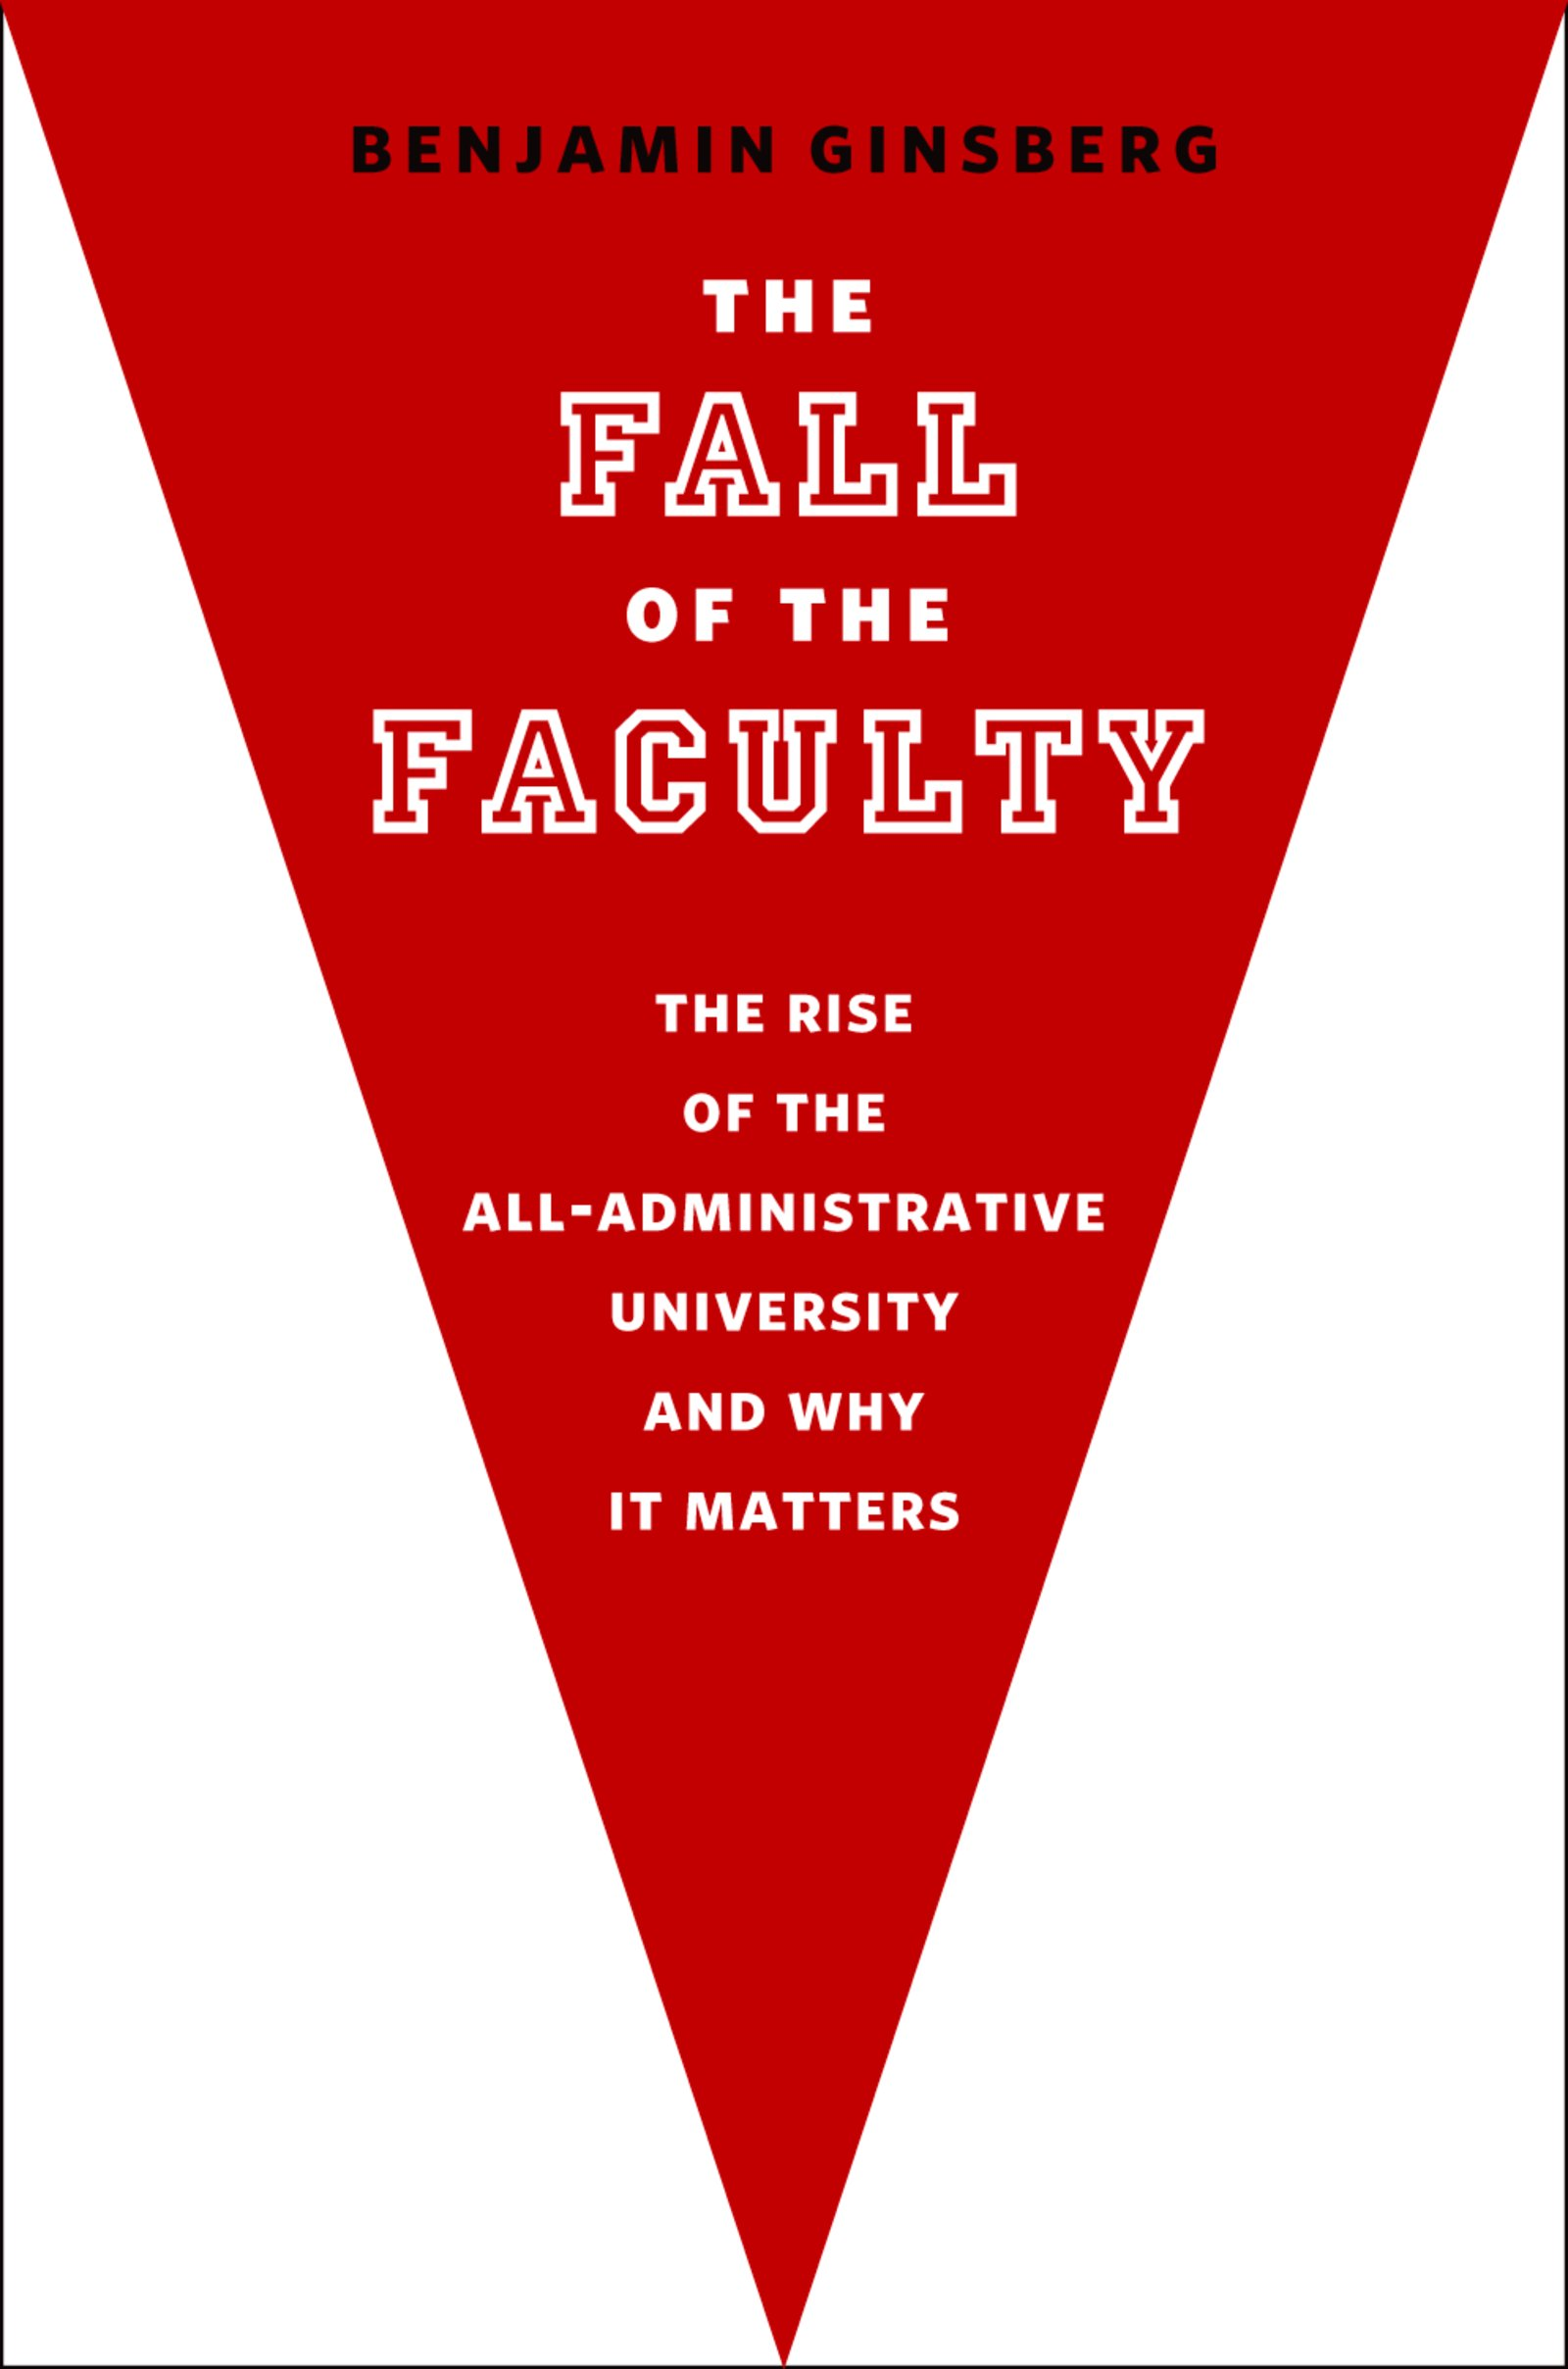 The Fall of the FacultyThe Rise of the All-Administrative University and Why It Matters